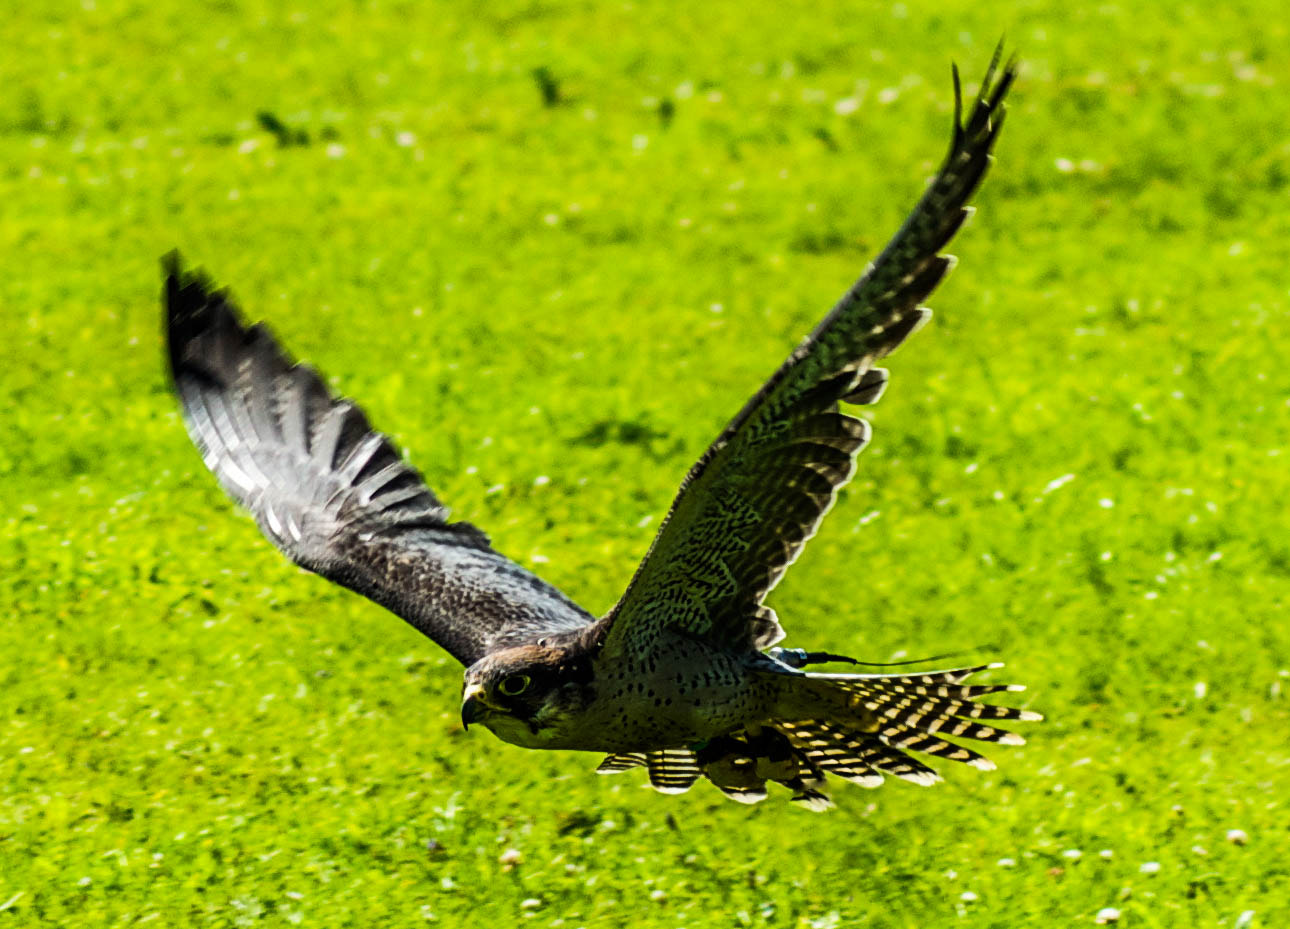 Photograph Lanner Falcon in flight by julian john on 500px